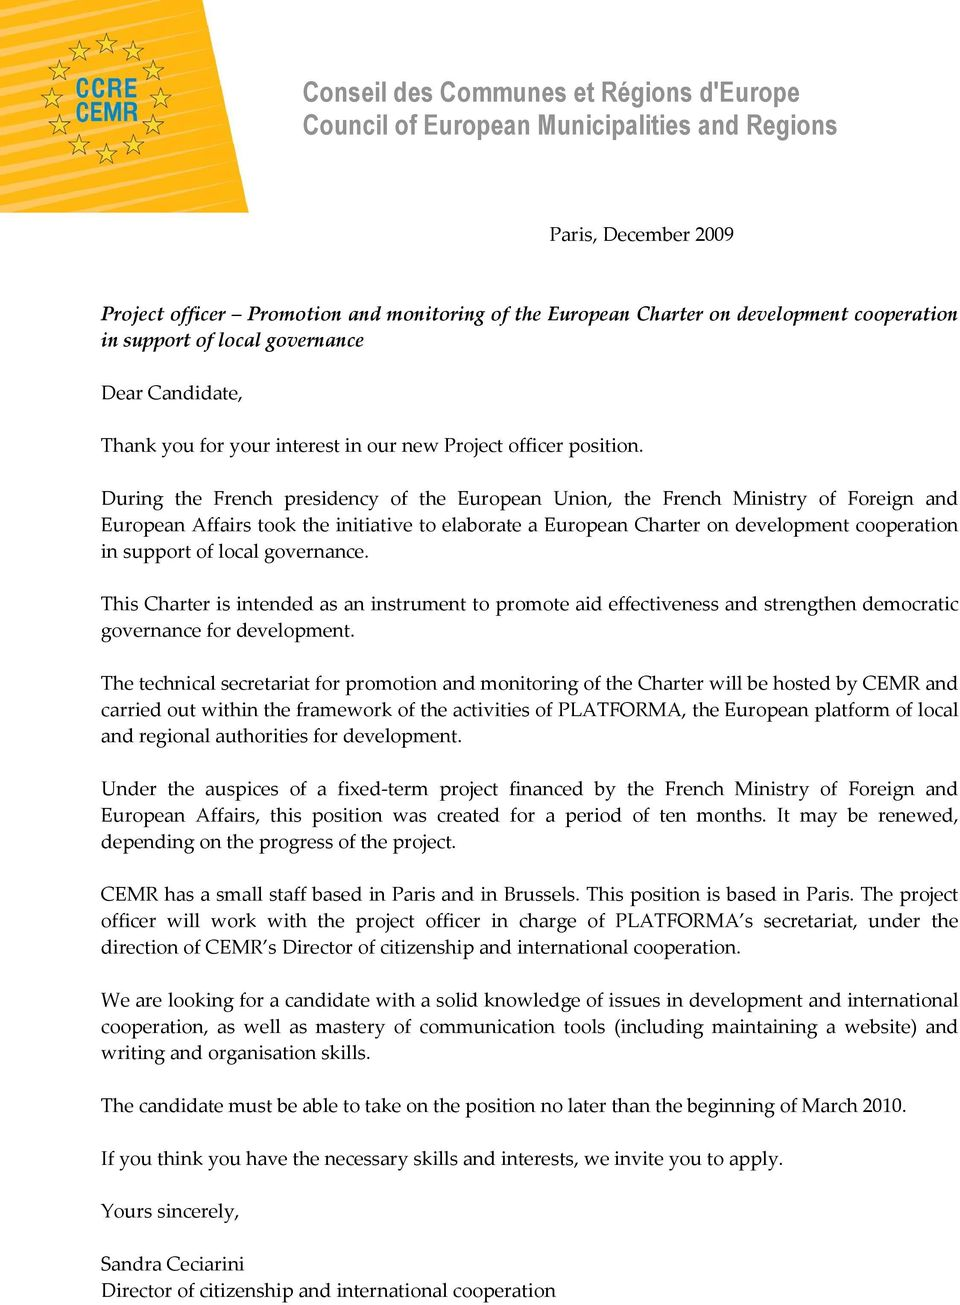 During the French presidency of the European Union, the French Ministry of Foreign and European Affairs took the initiative to elaborate a European Charter on development cooperation in support of